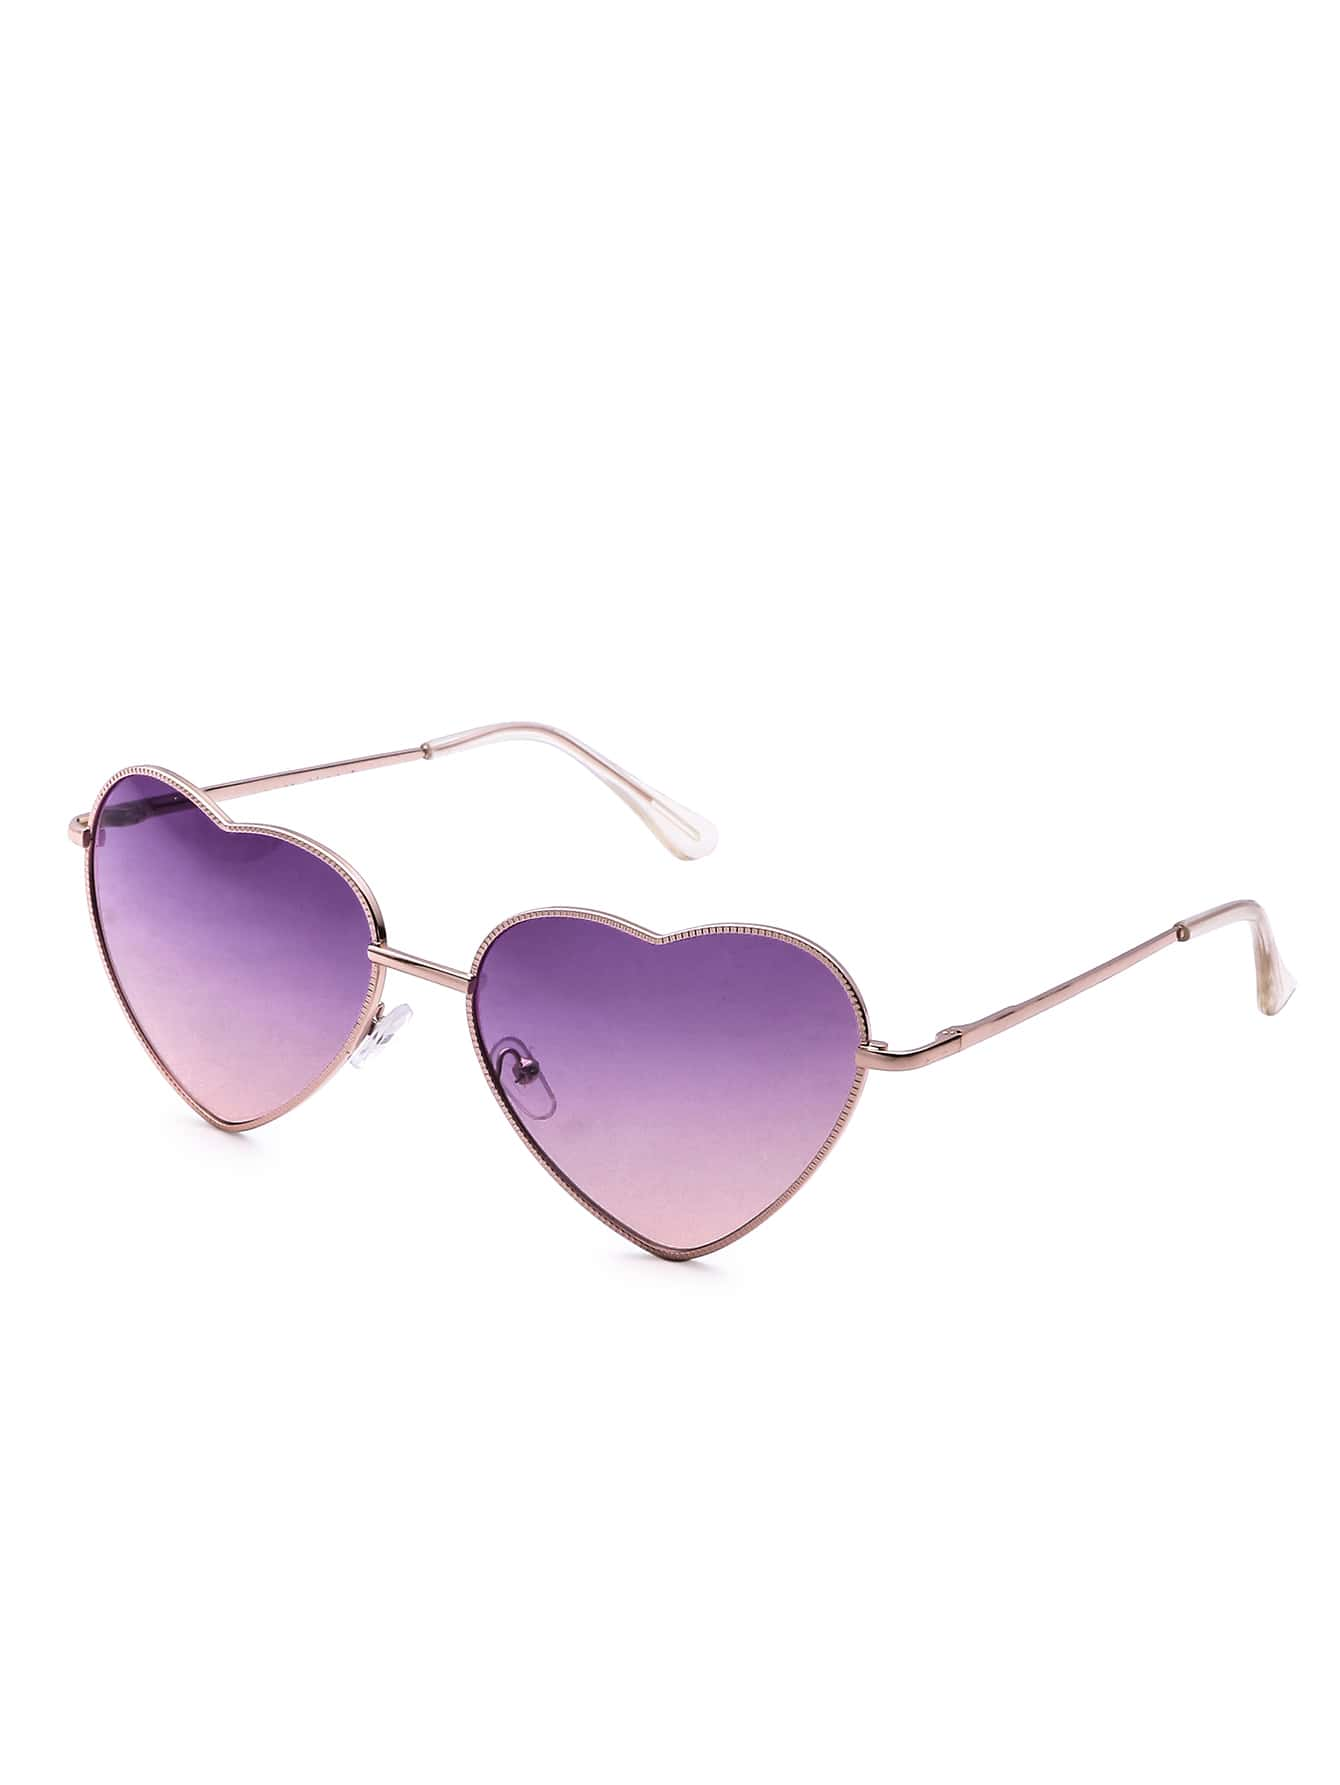 Rose Gold Frame Heart Shaped Purple Lens Sunglasses